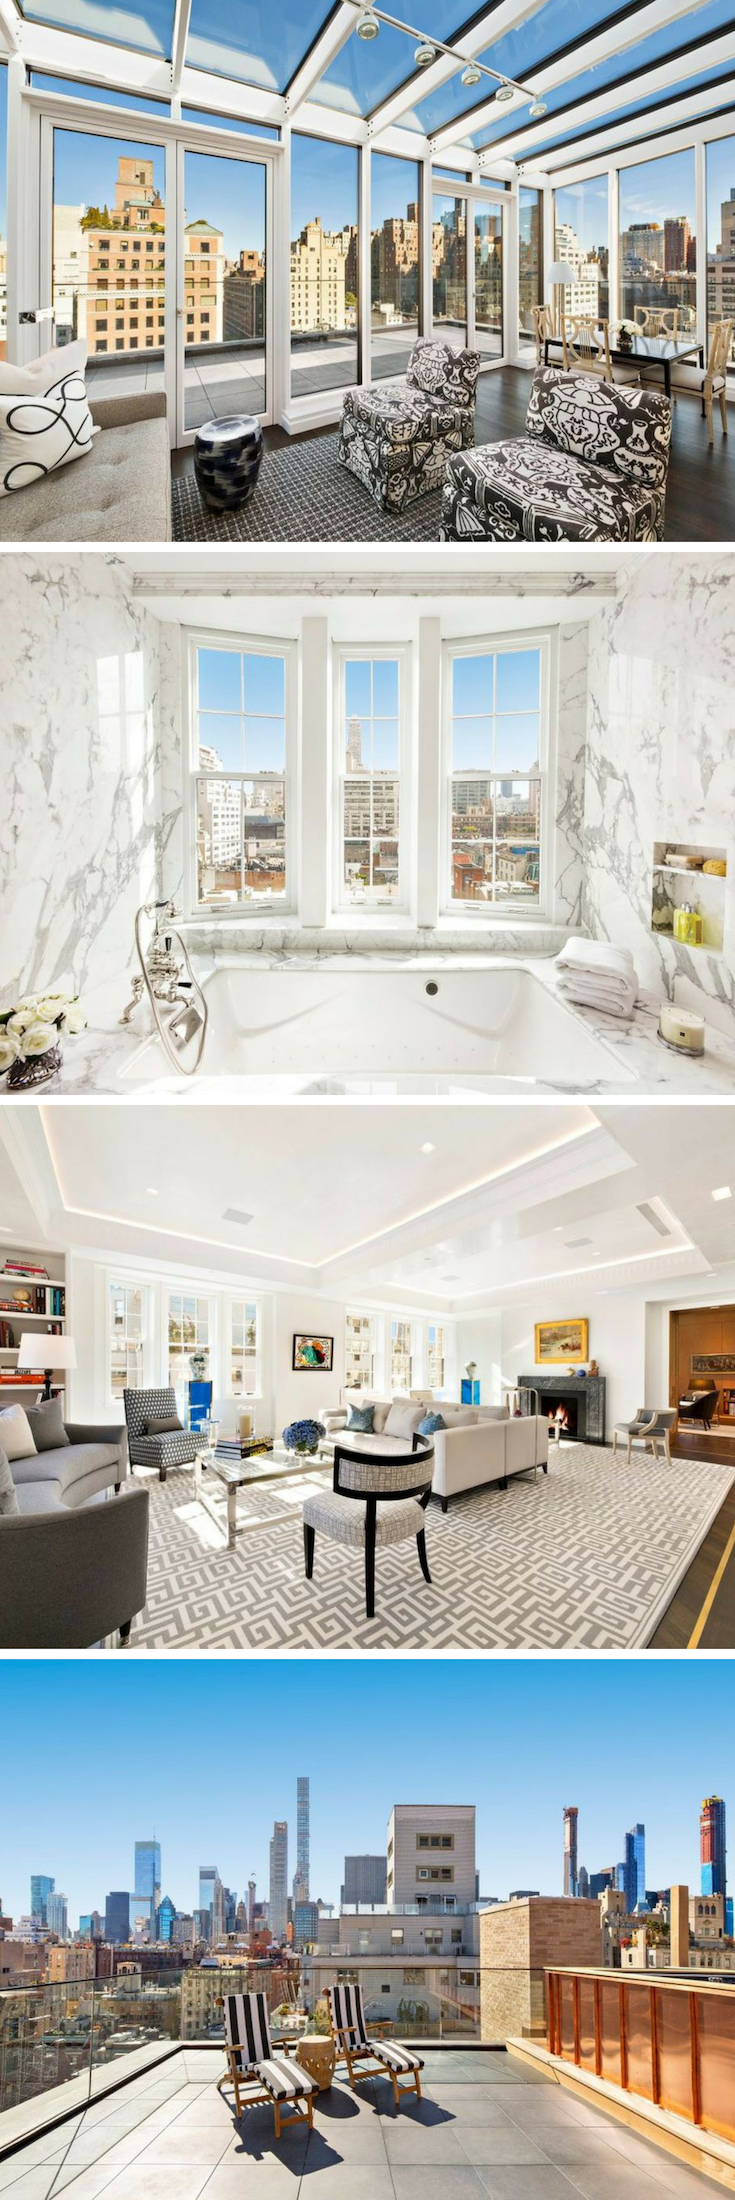 Dramatic 36m Penthouse In Nyc Is This Week S Most Expensive New Listing Nyc Apartment Luxury New York Apartment Luxury Luxury Penthouse